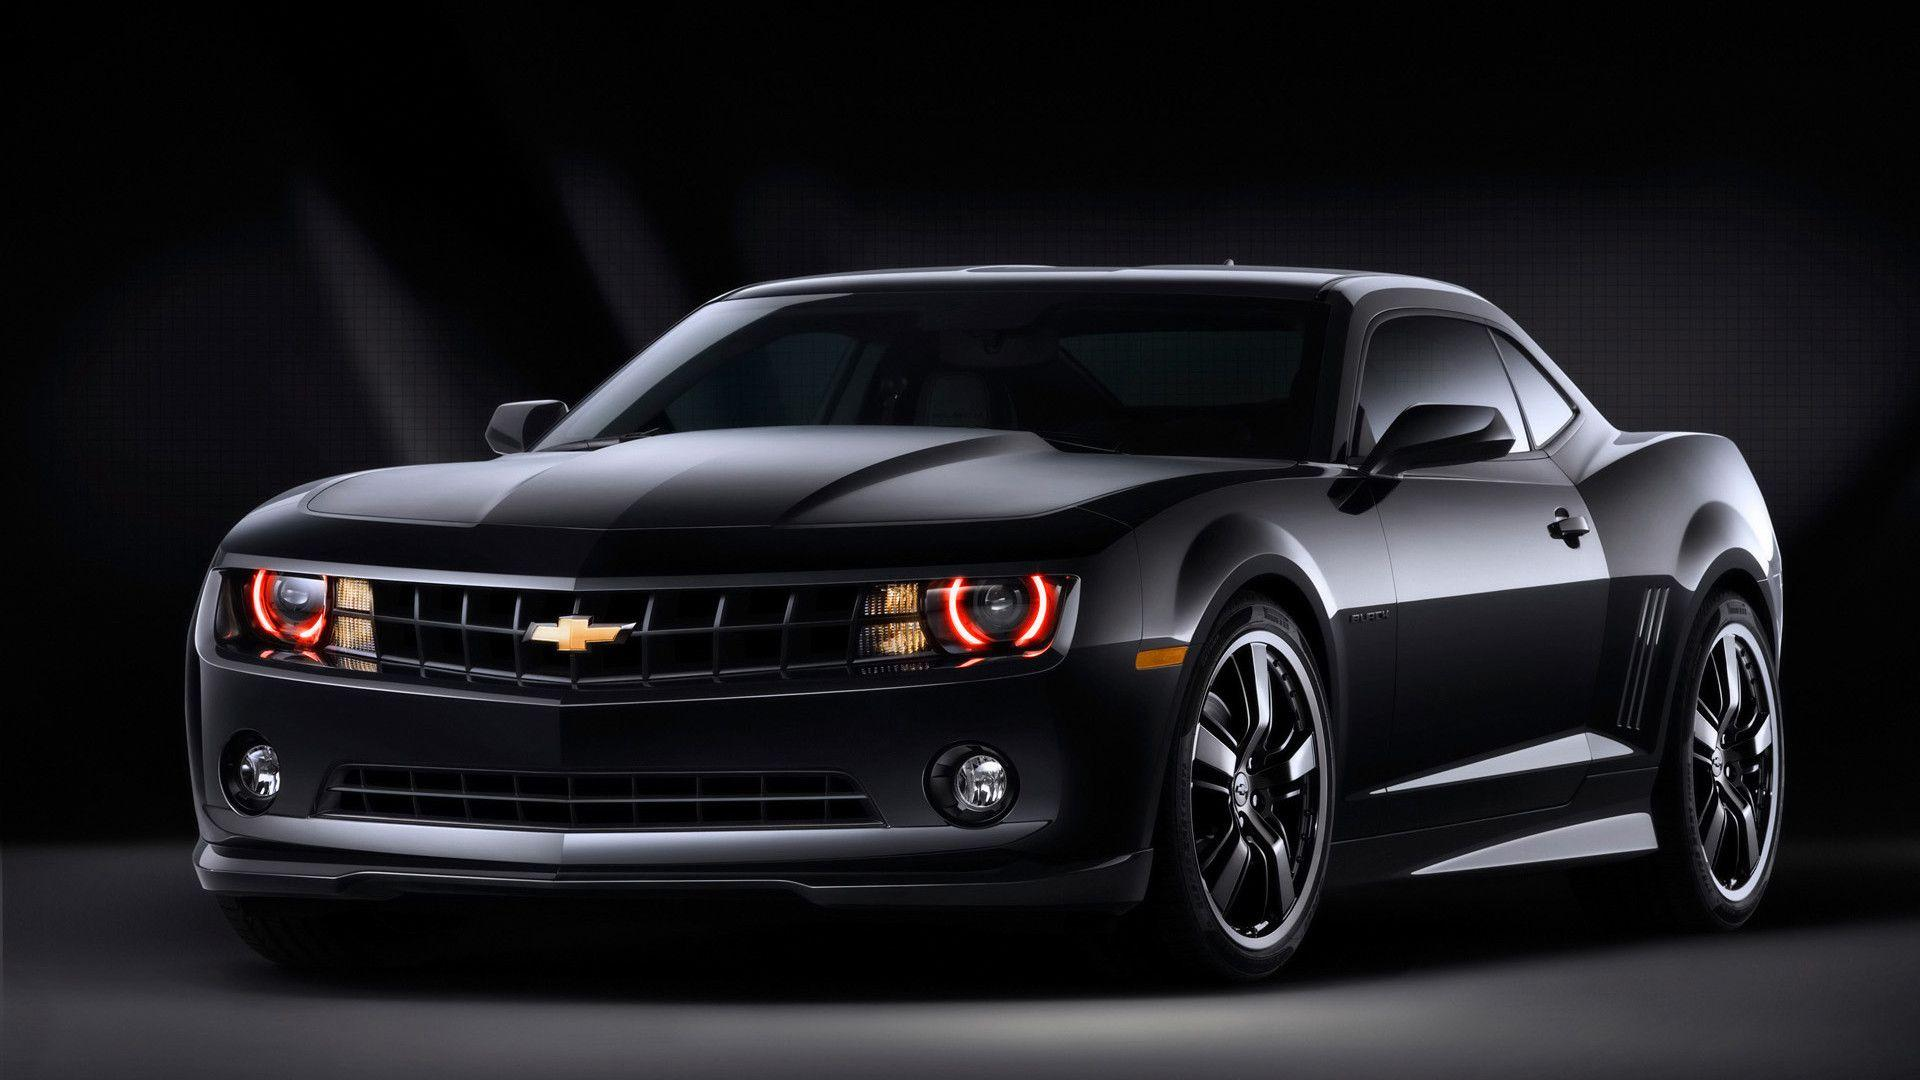 Muscle Car Wallpapers For Desktop: Muscle Car Wallpapers For Desktop